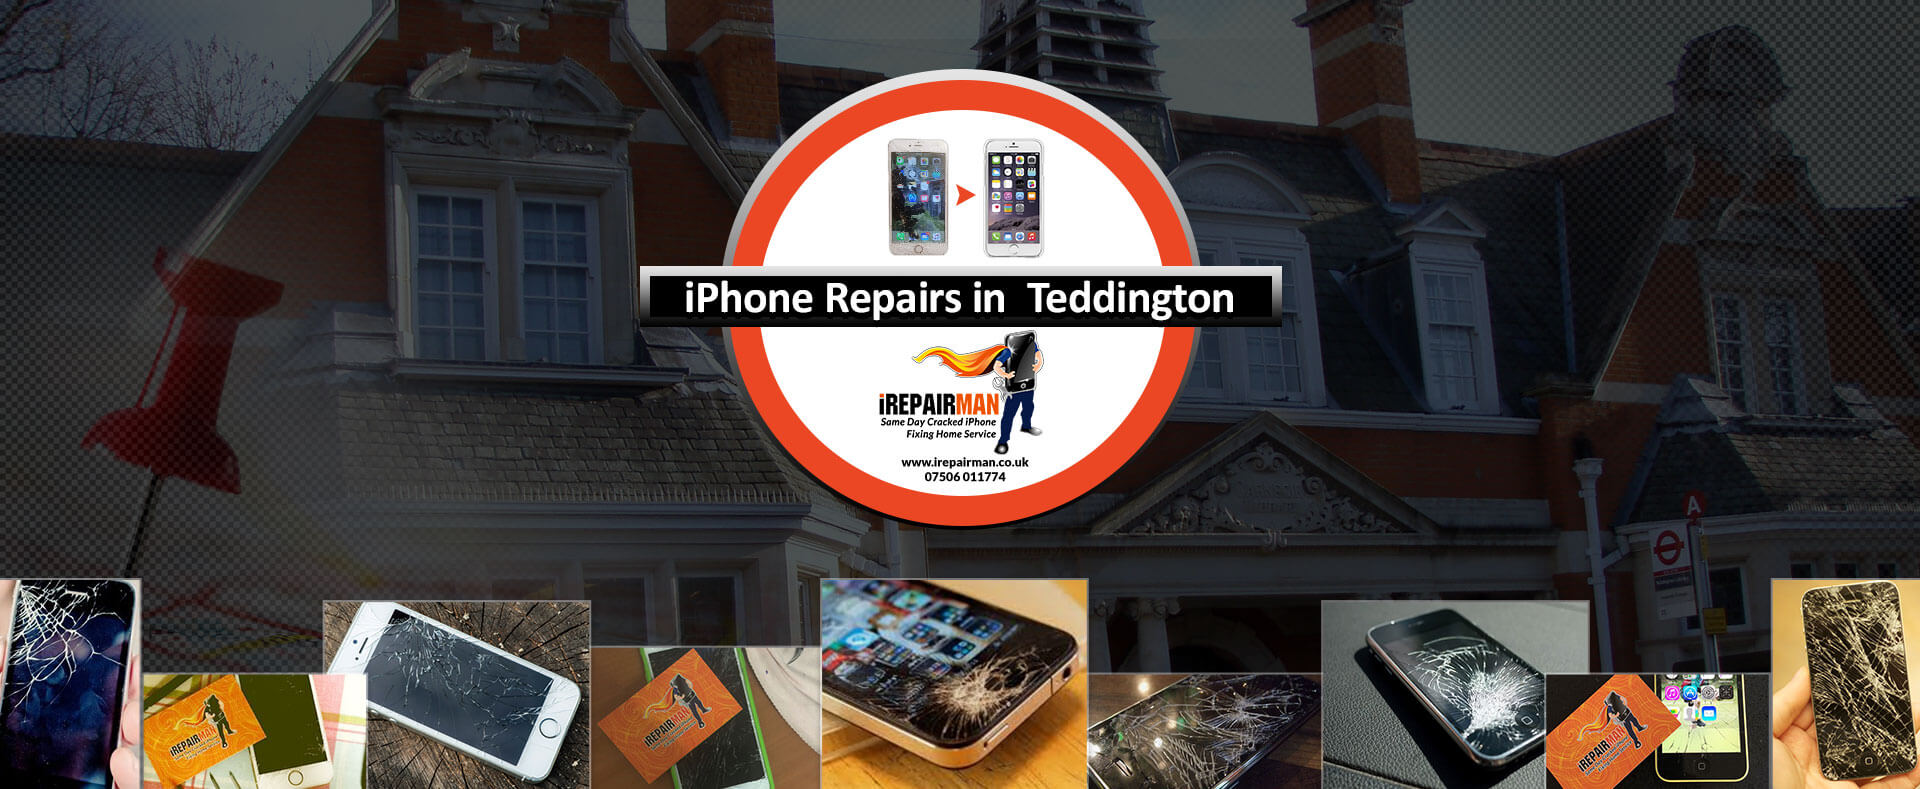 iPhone Repairs in Teddington